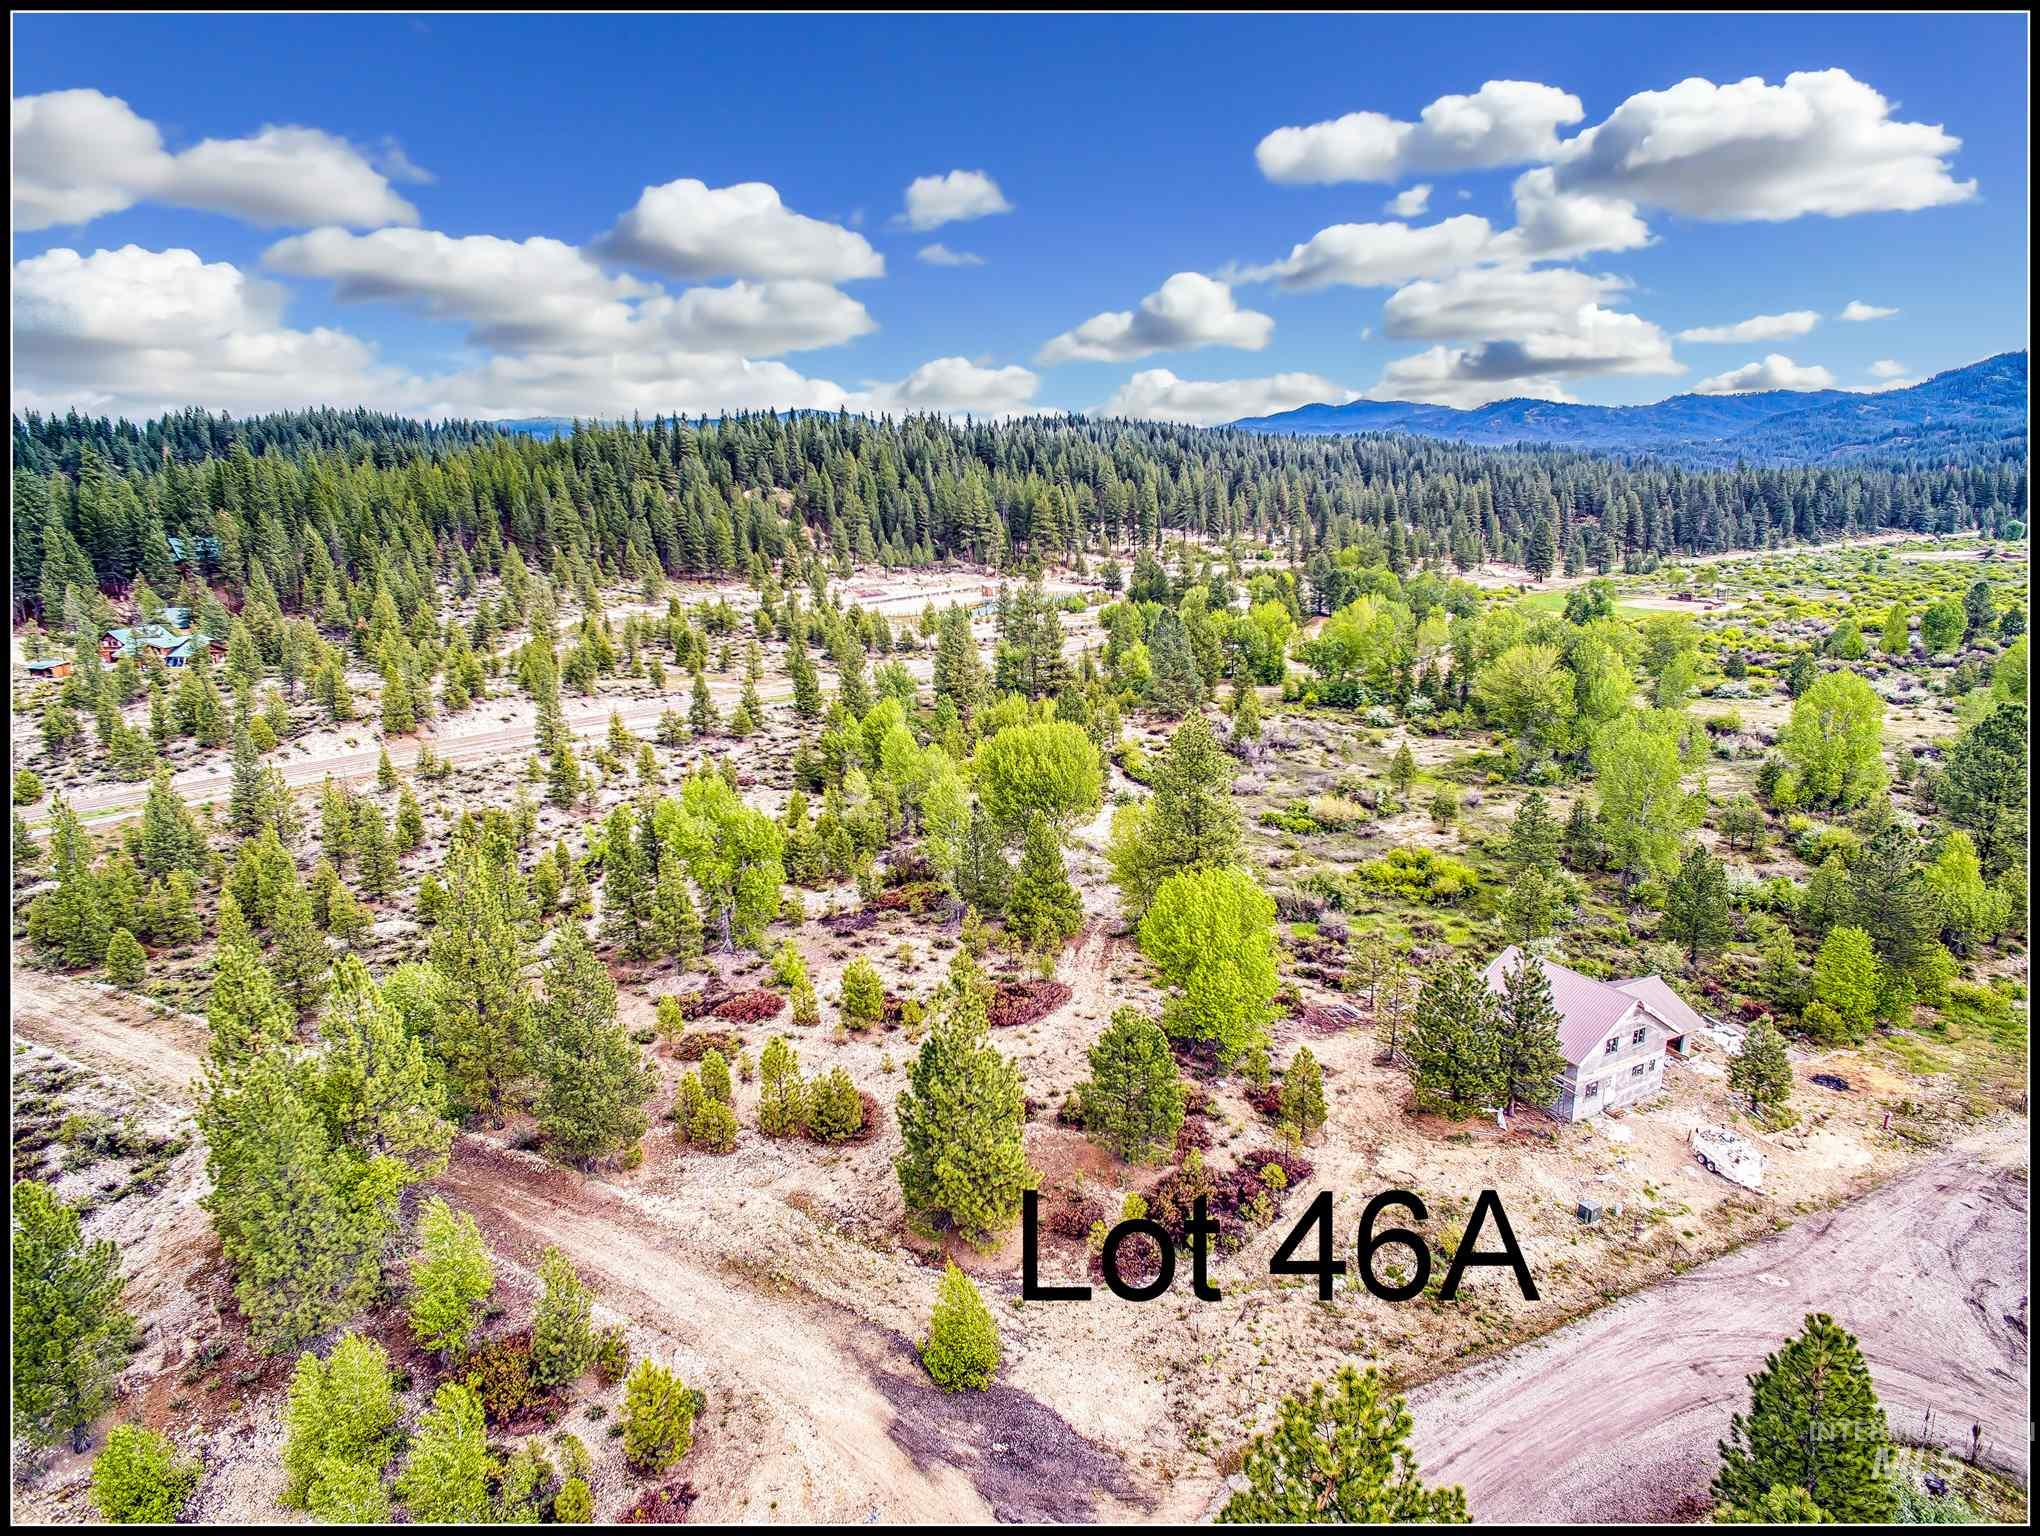 Lot 46A Mores Creek Crossing, Idaho City, Idaho 83631, Land For Sale, Price $59,390, 98784698